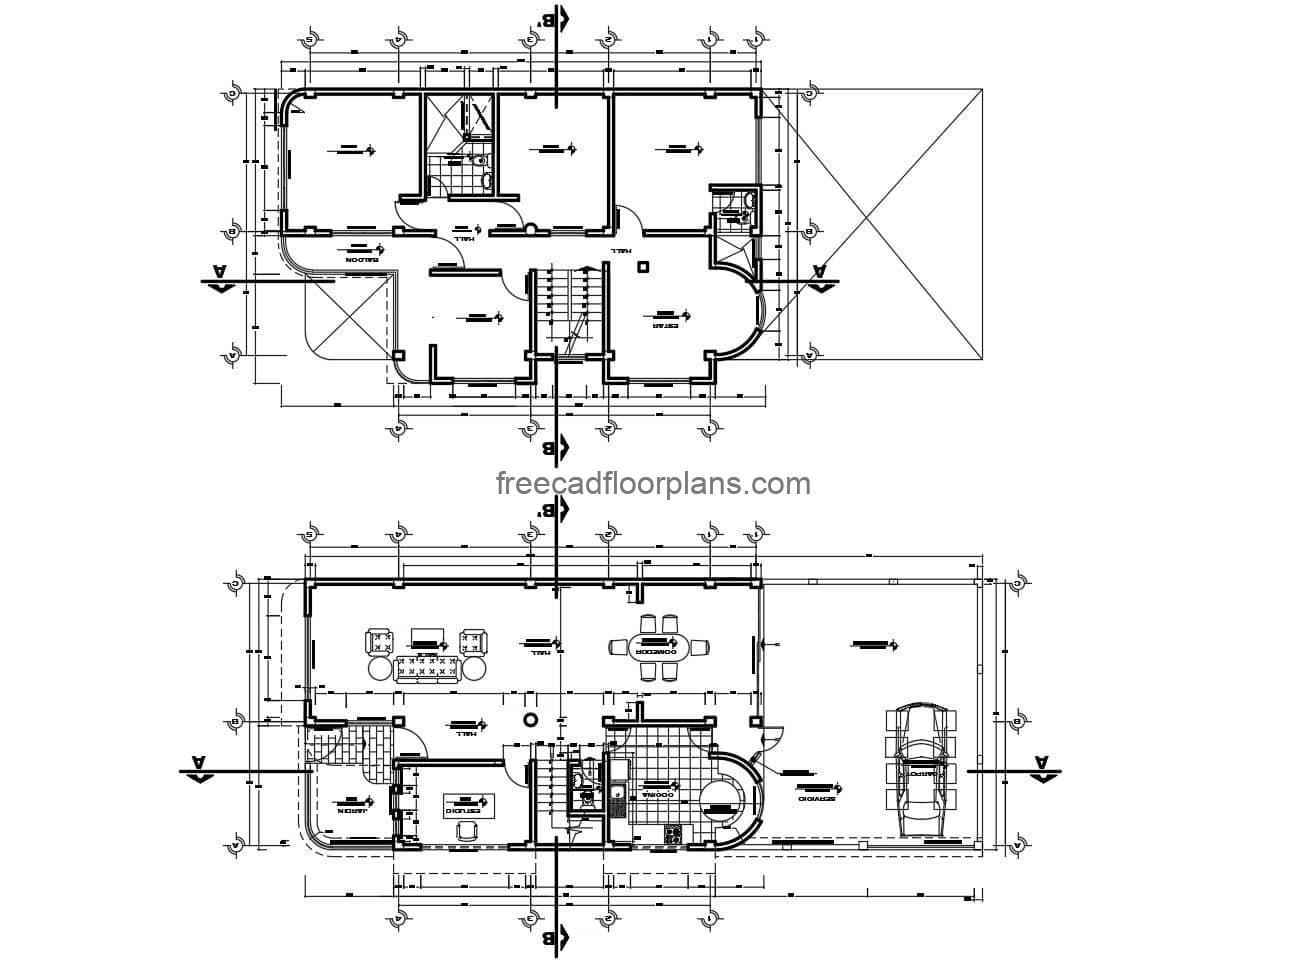 Architectural design and complete plans of two-level residence in autocad for free download.